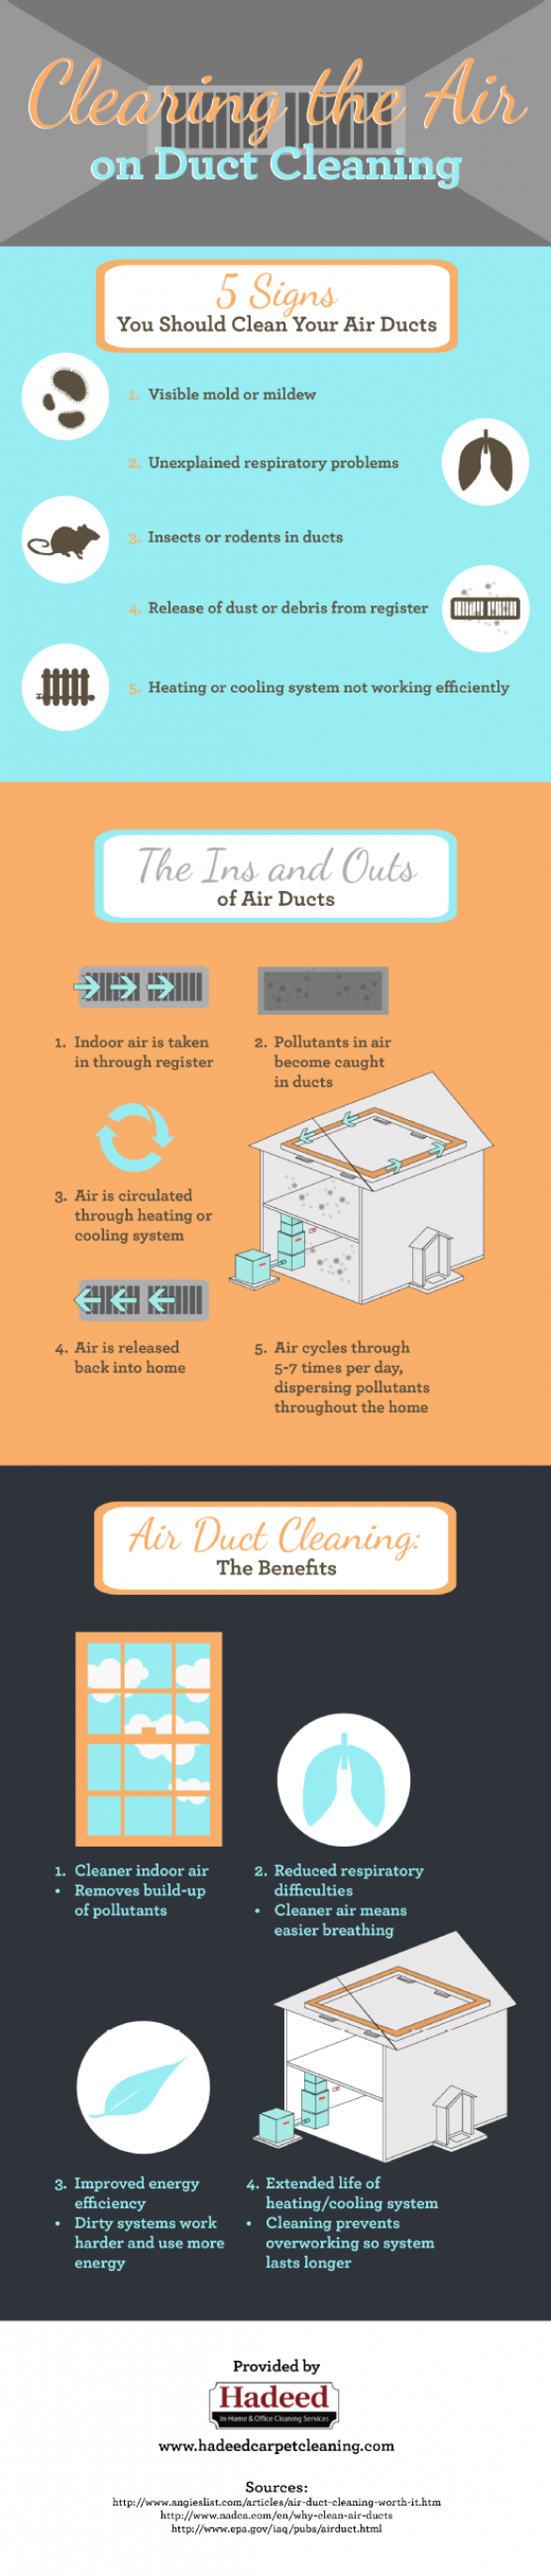 Clearing the Air on Duct Cleaning